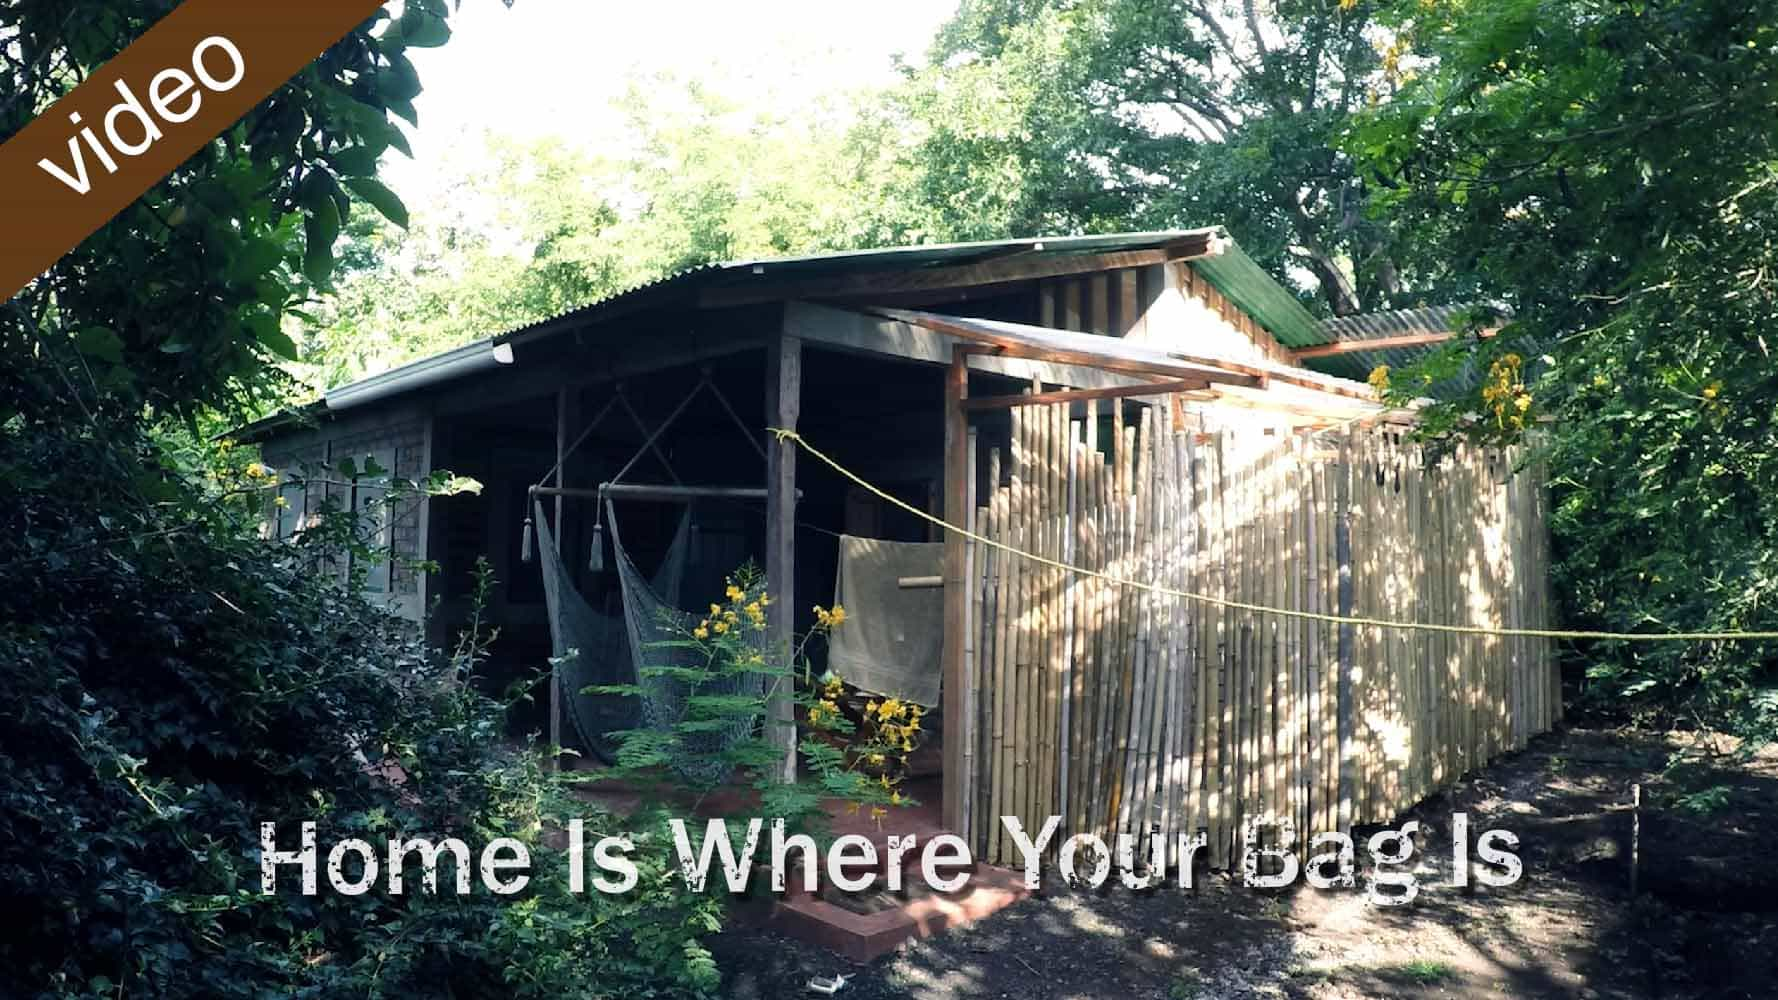 Home Is Where Your Bag Is Video